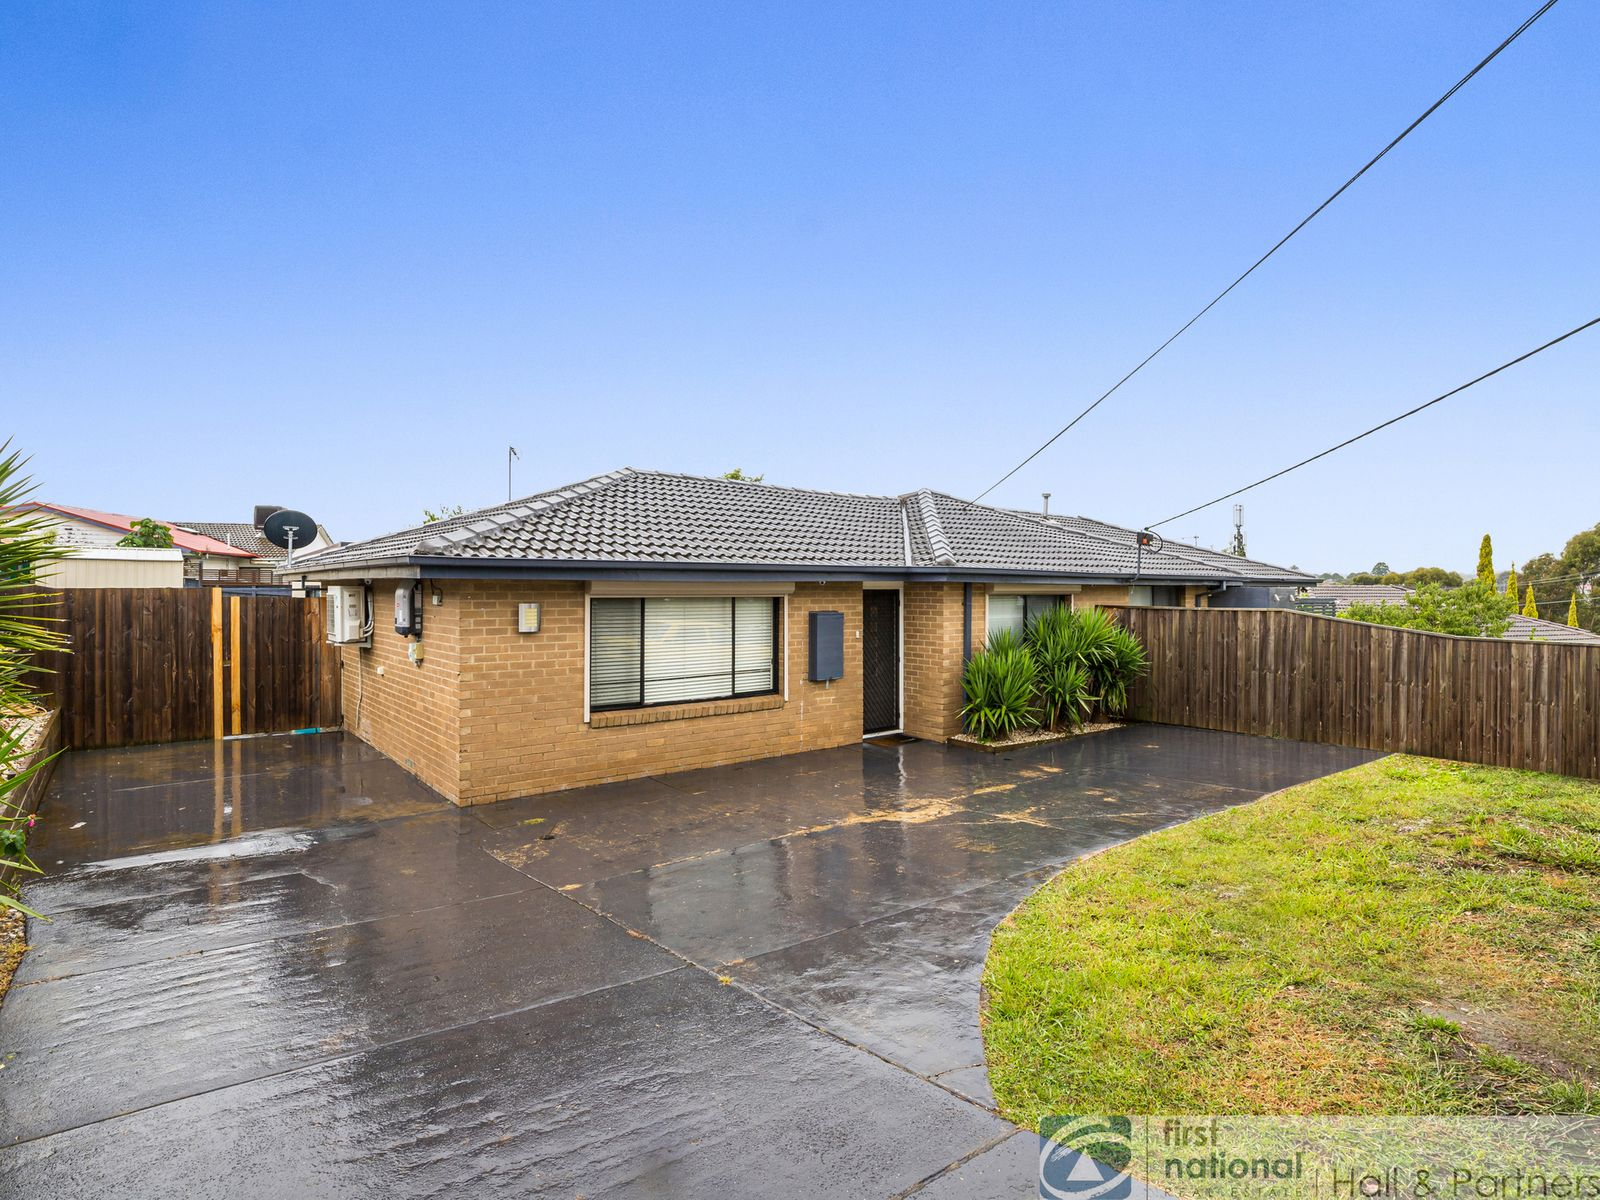 1/50 Kidds Road, Doveton, VIC 3177